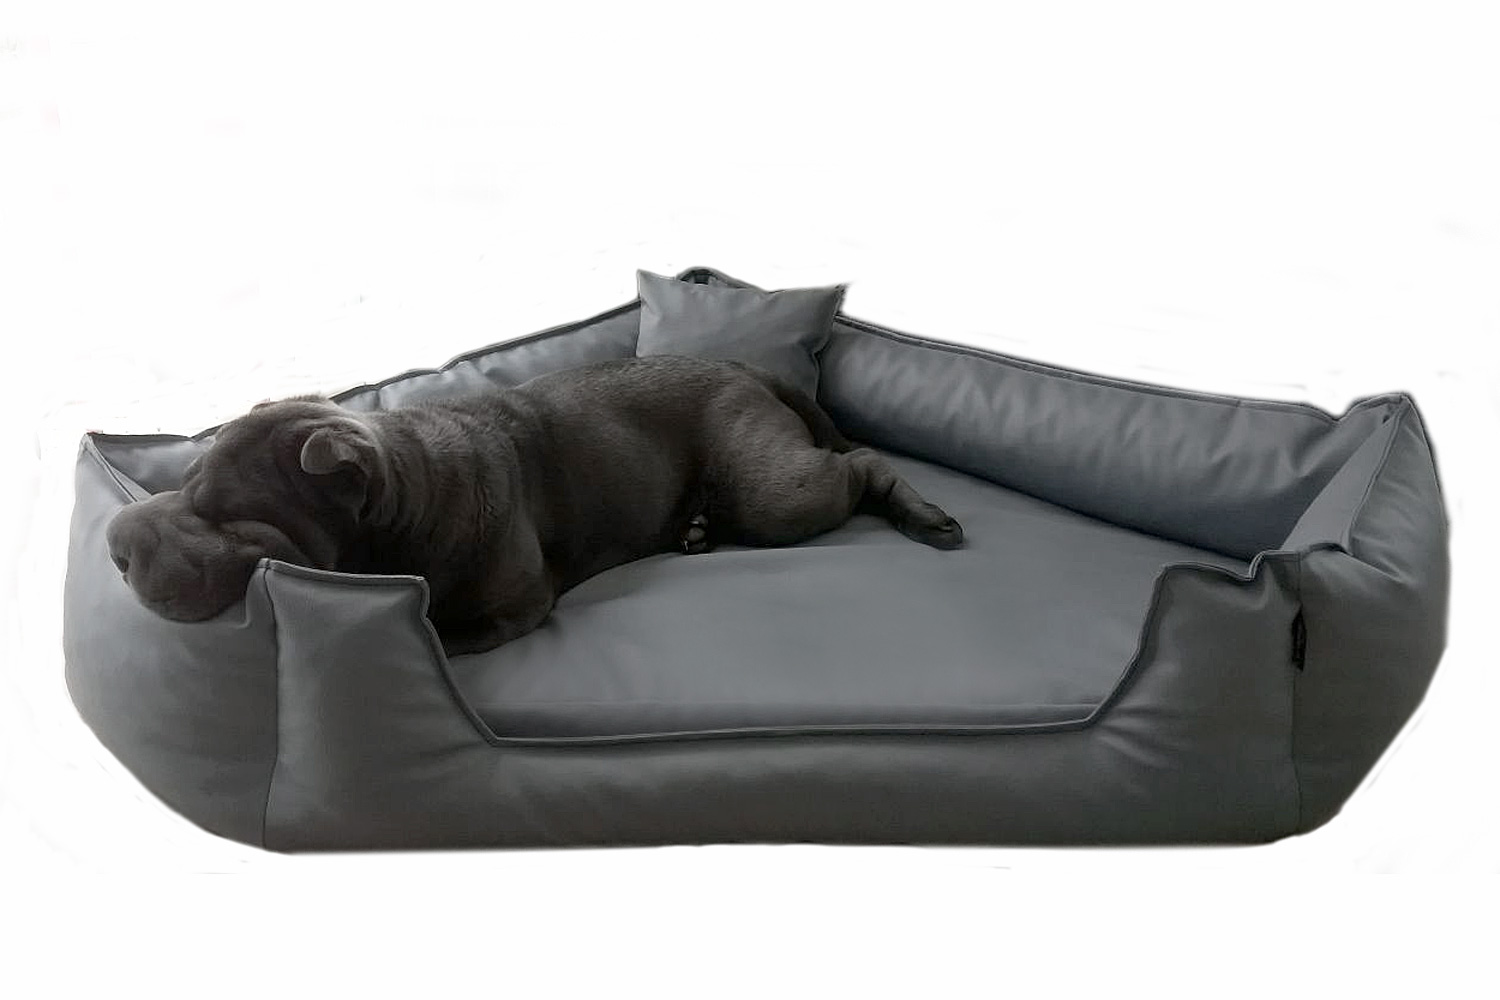 Full Size of Hundebett Flocke 125 Cm Tierlando Orthopdisches Spencer Ortho Plus Fnfeckig Bett Liegehöhe 60 Regal Tiefe 30 120 Breit 40 Sofa Sitzhöhe 55 25 Tief 50 20 80 Wohnzimmer Hundebett Flocke 125 Cm